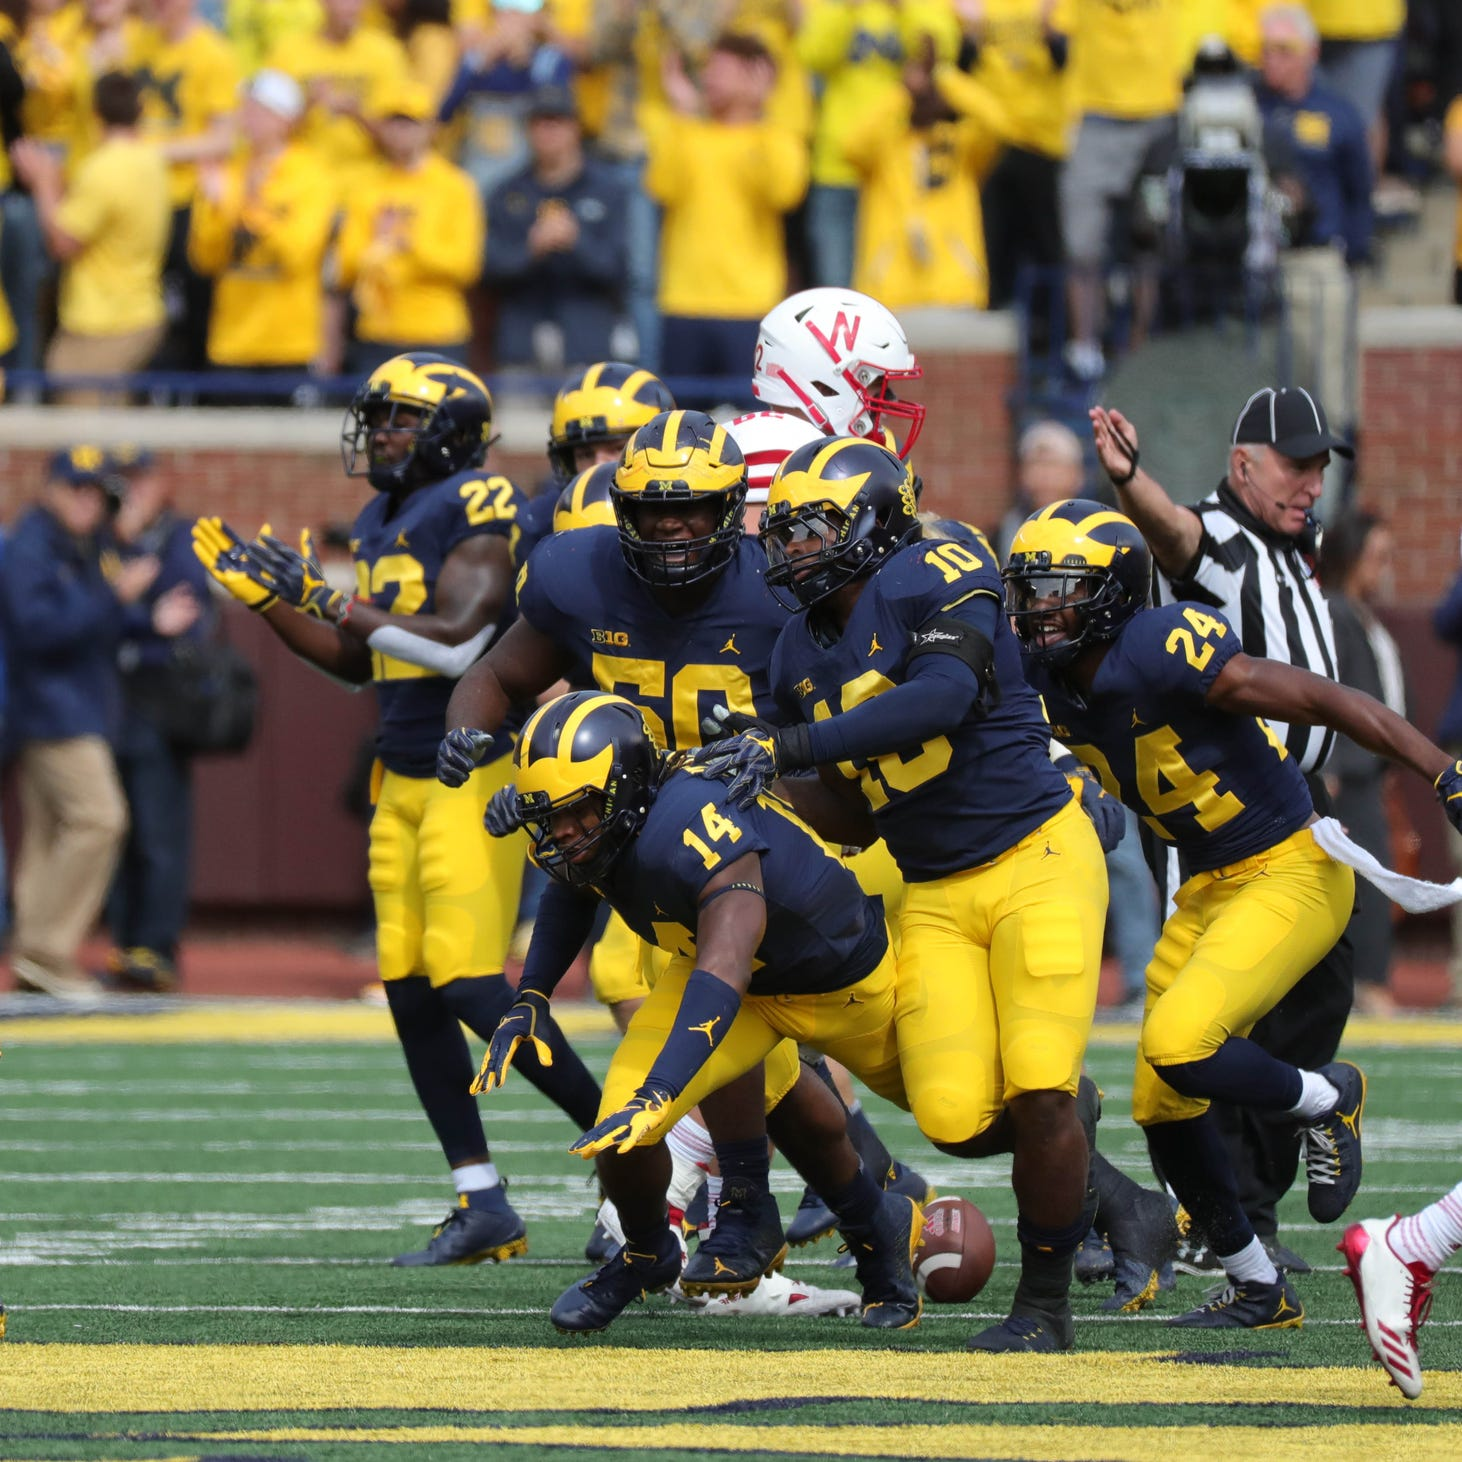 As momentum builds, Michigan football can learn from prior hype